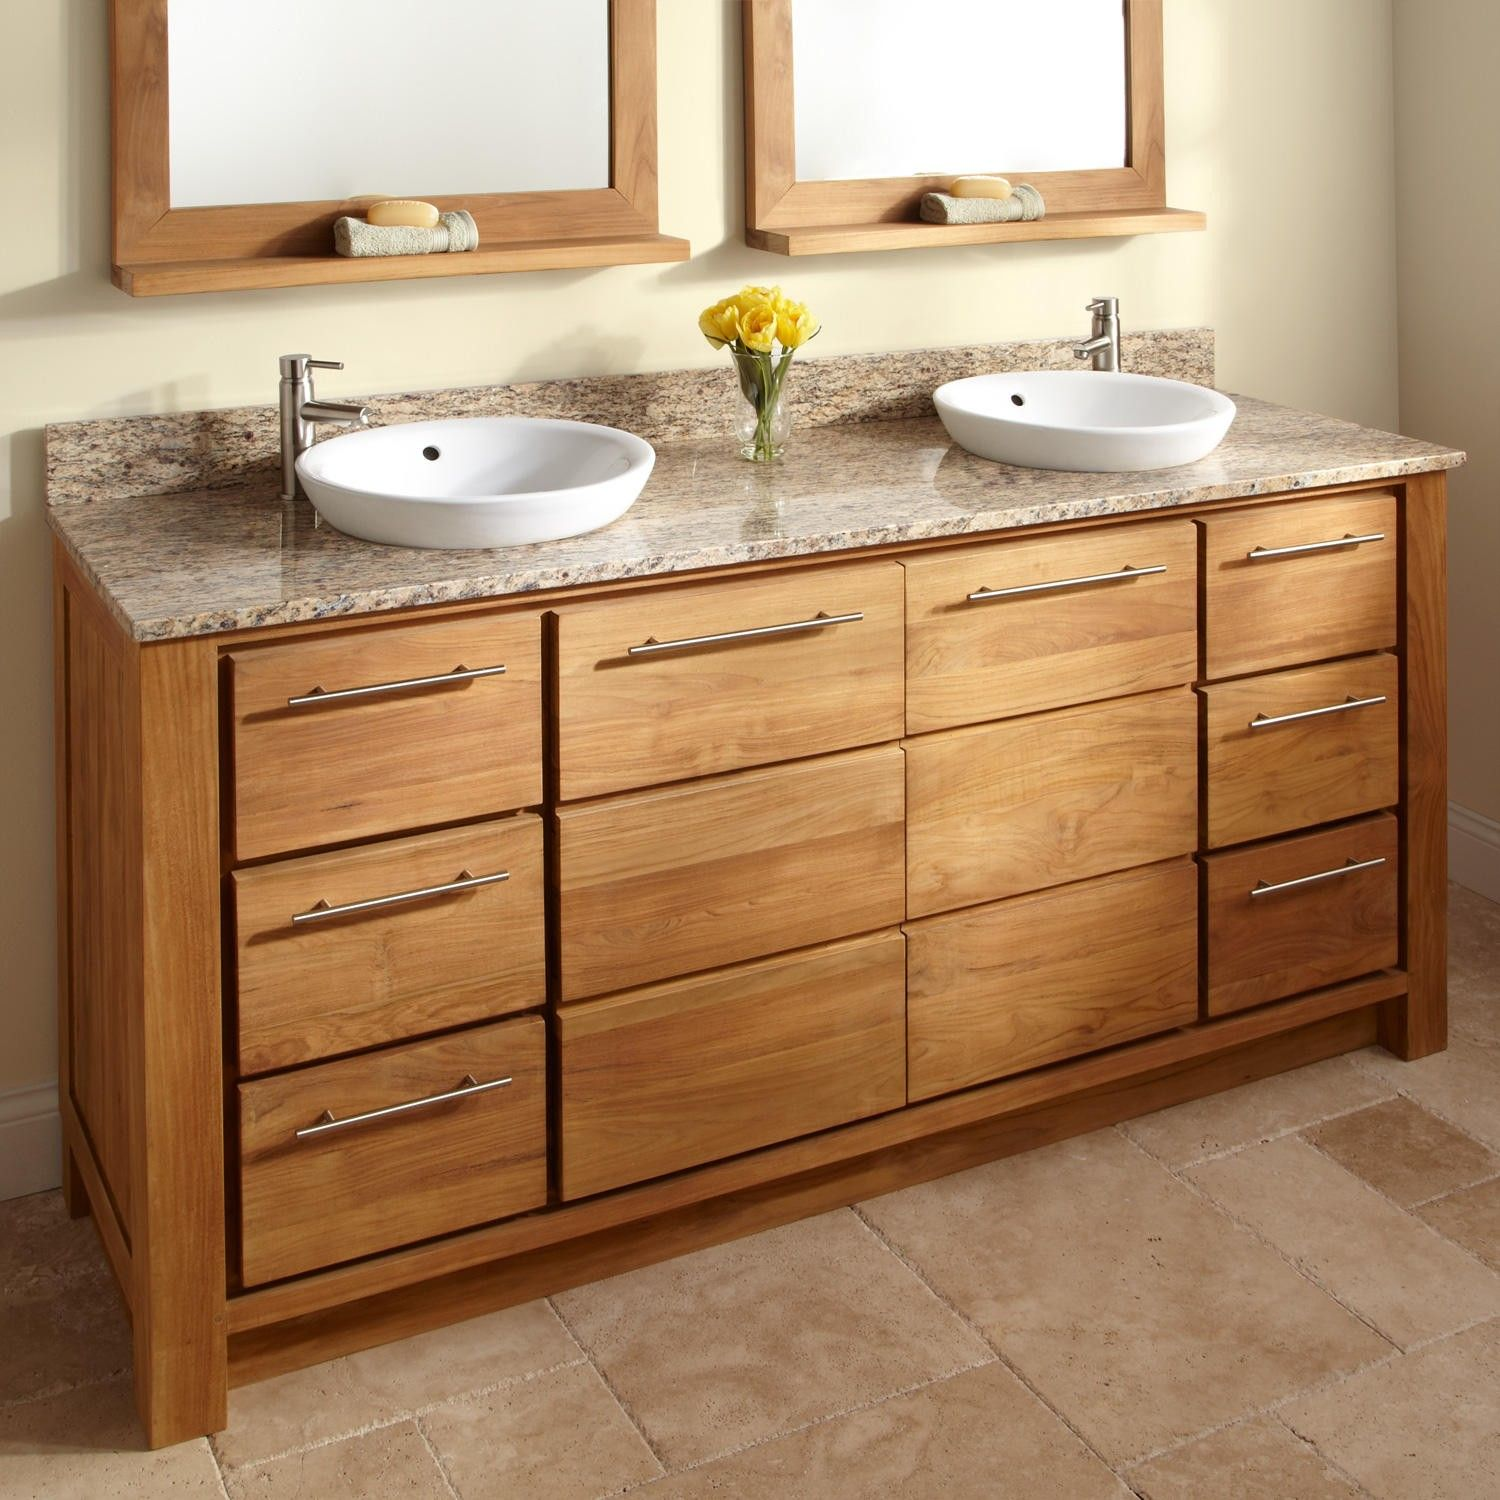 "72"" venica teak double vanity for semi-recessed sinks - natural"